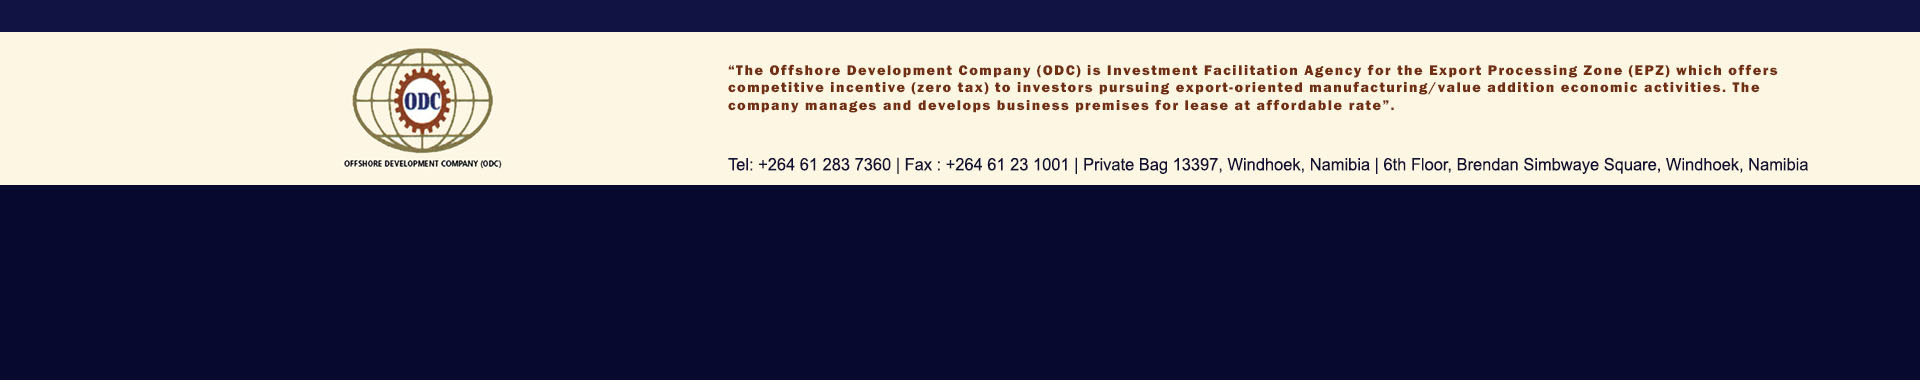 TDS Africa (Pty) Ltd - Online Business Directory